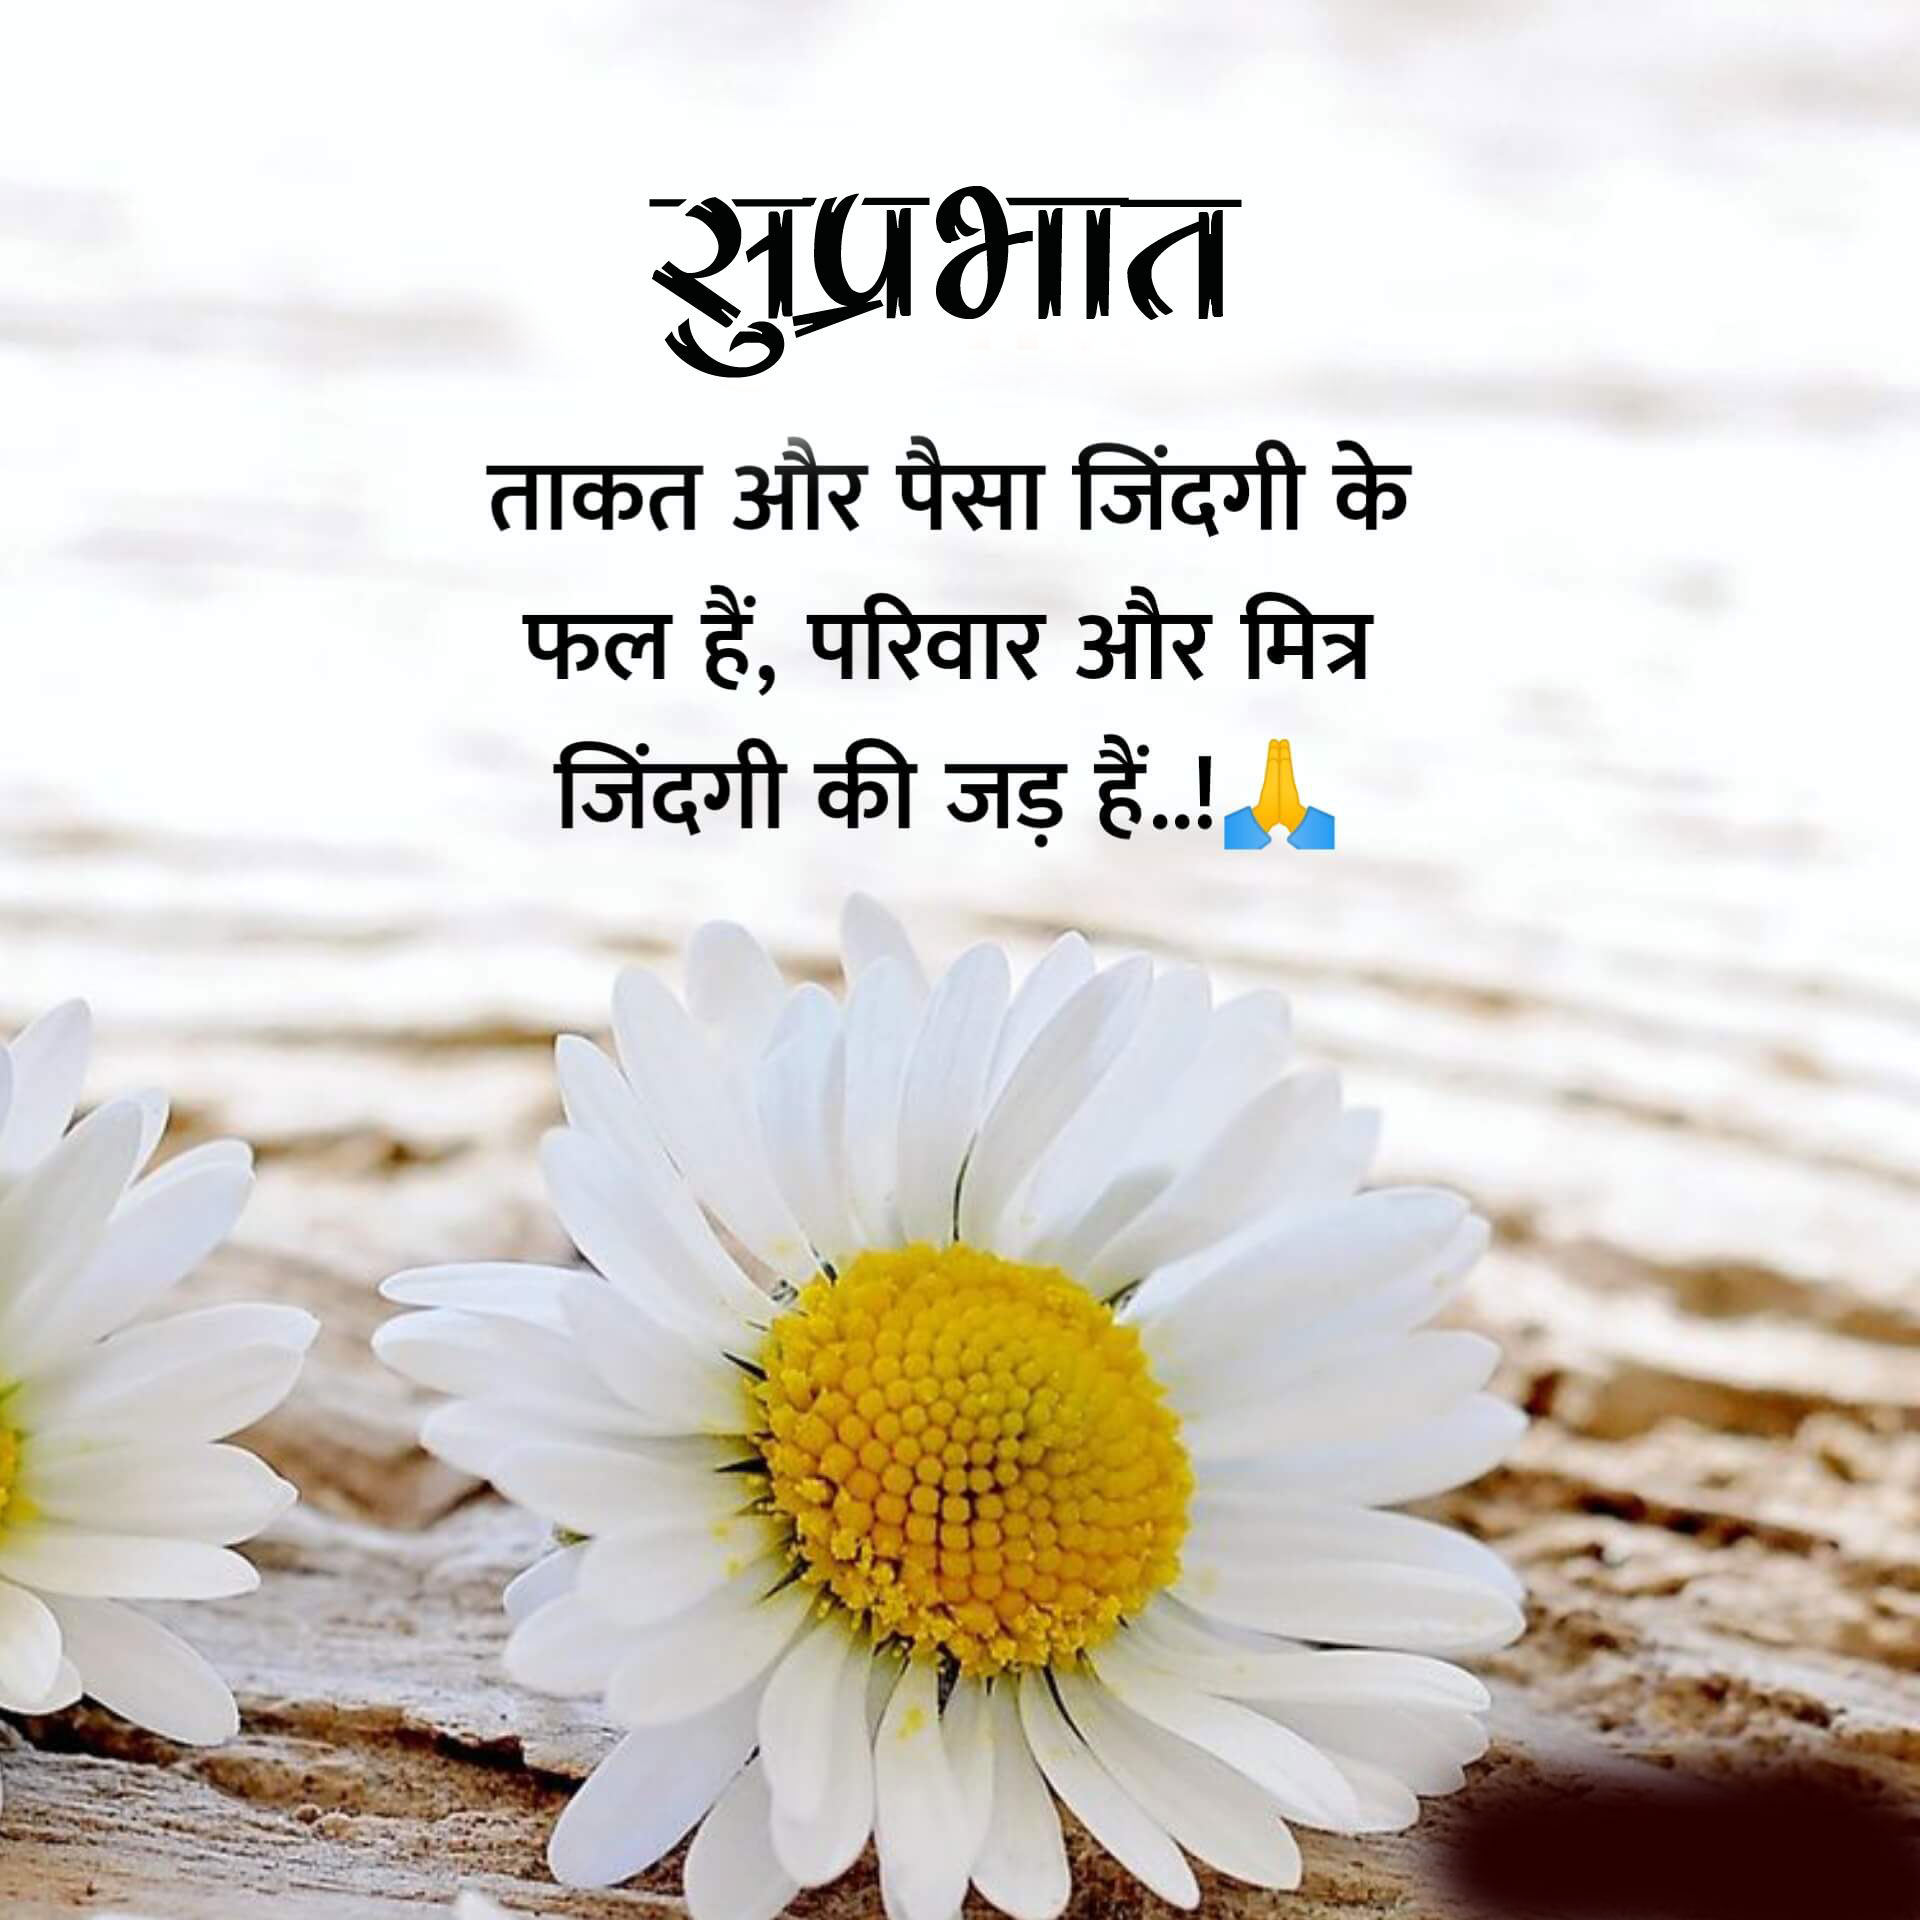 New Beautiful Suprabhat Images for whatsapp dp